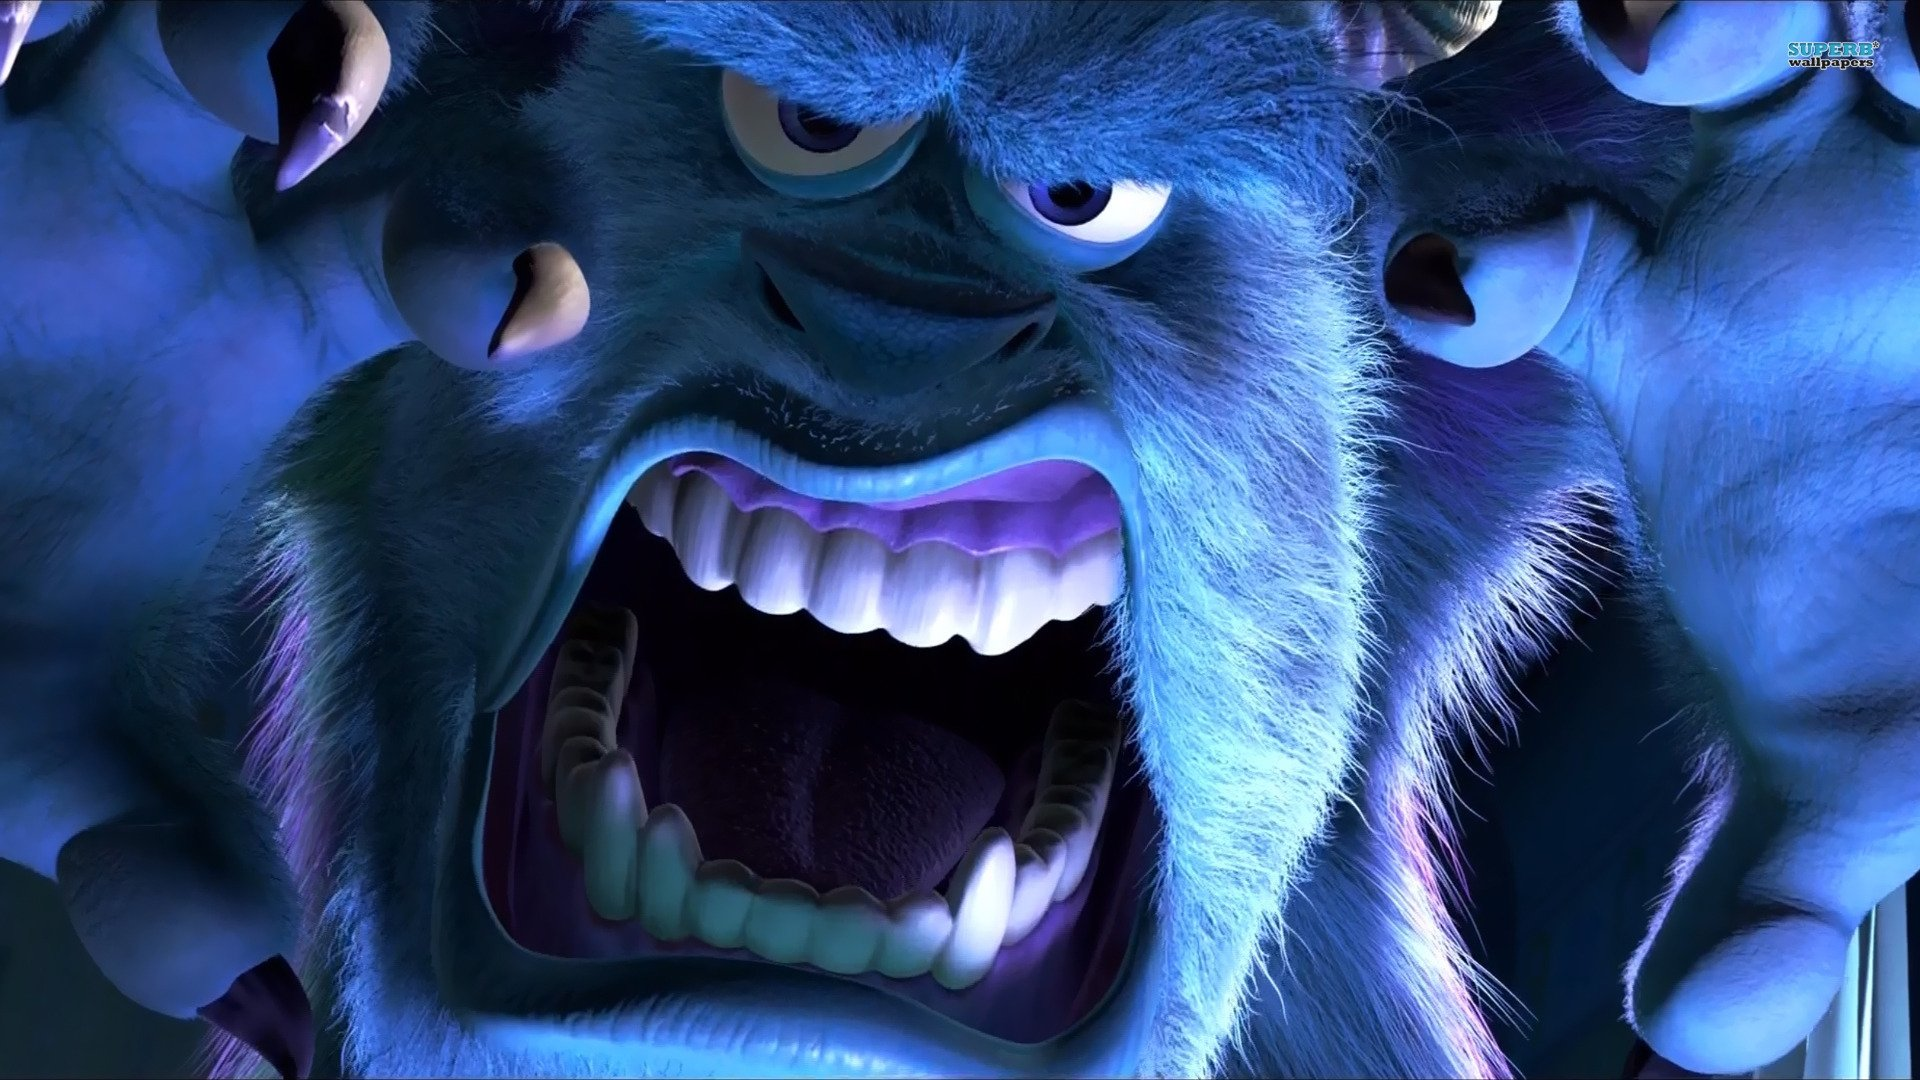 Monsters Inc. (USA 2001; Pete Docter)